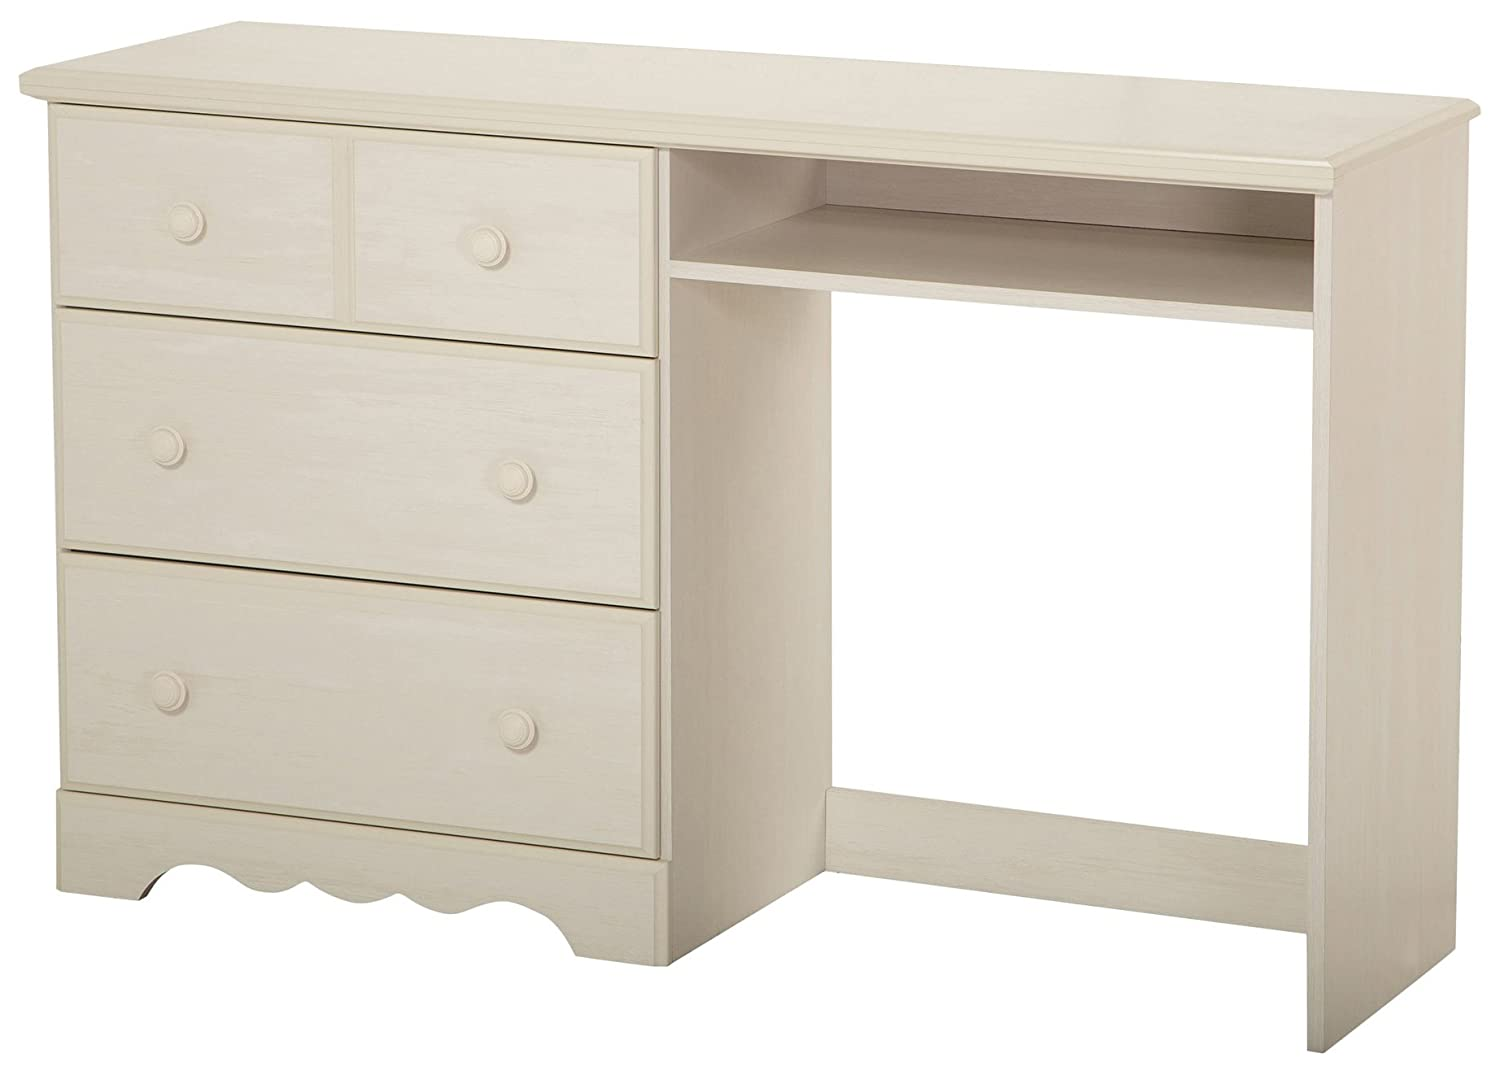 South Shore Furniture Summer Breeze Desk with 3 Drawers, White Wash 3210070